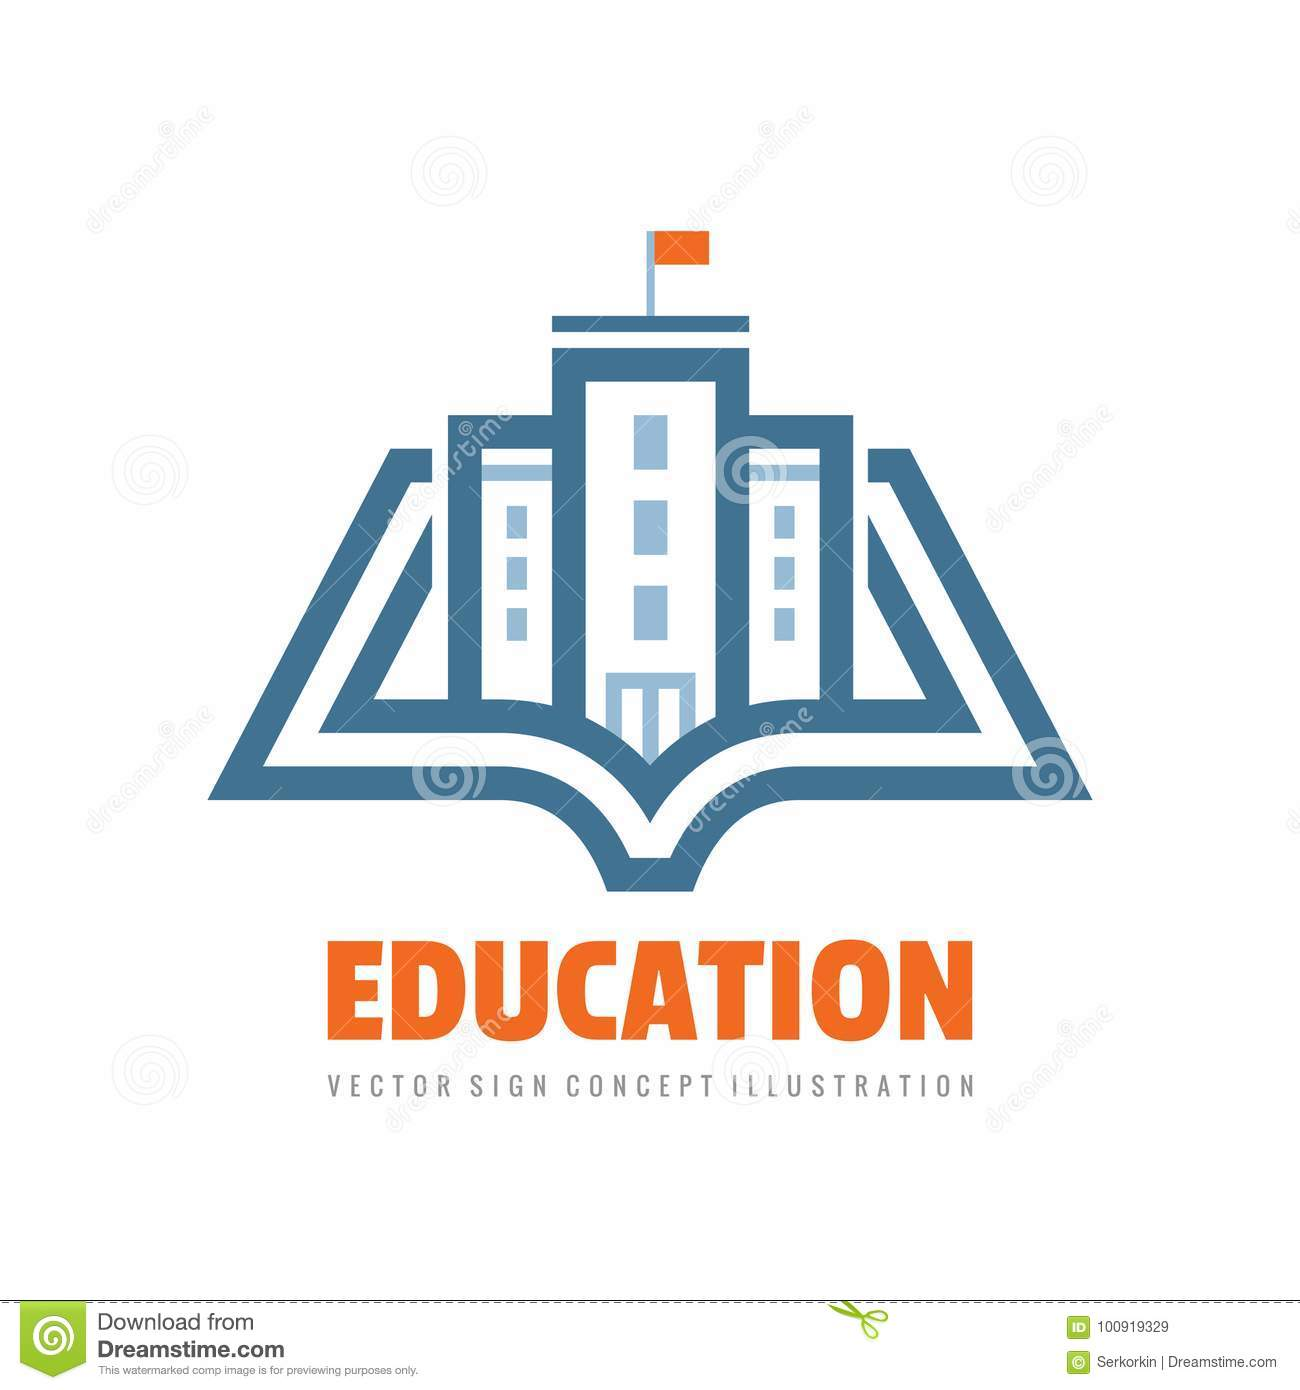 Education - vector logo template concept illustration. Book learning creative sign. Emblem for school or university.